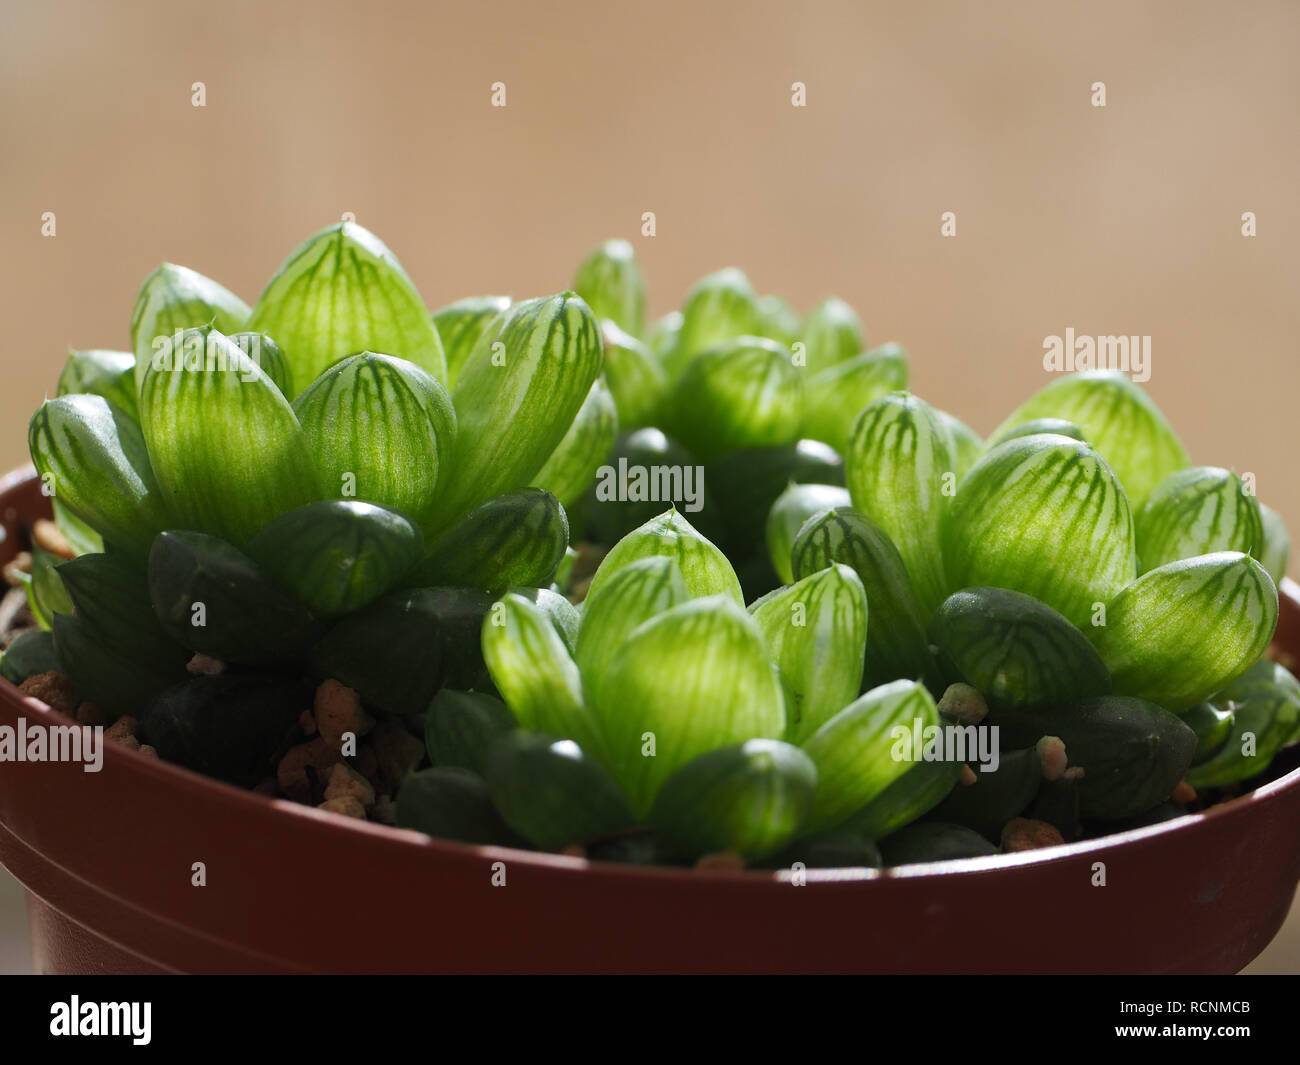 Cute Haworthia plant from my own garden with sun shining on their translucent leaves - Stock Image